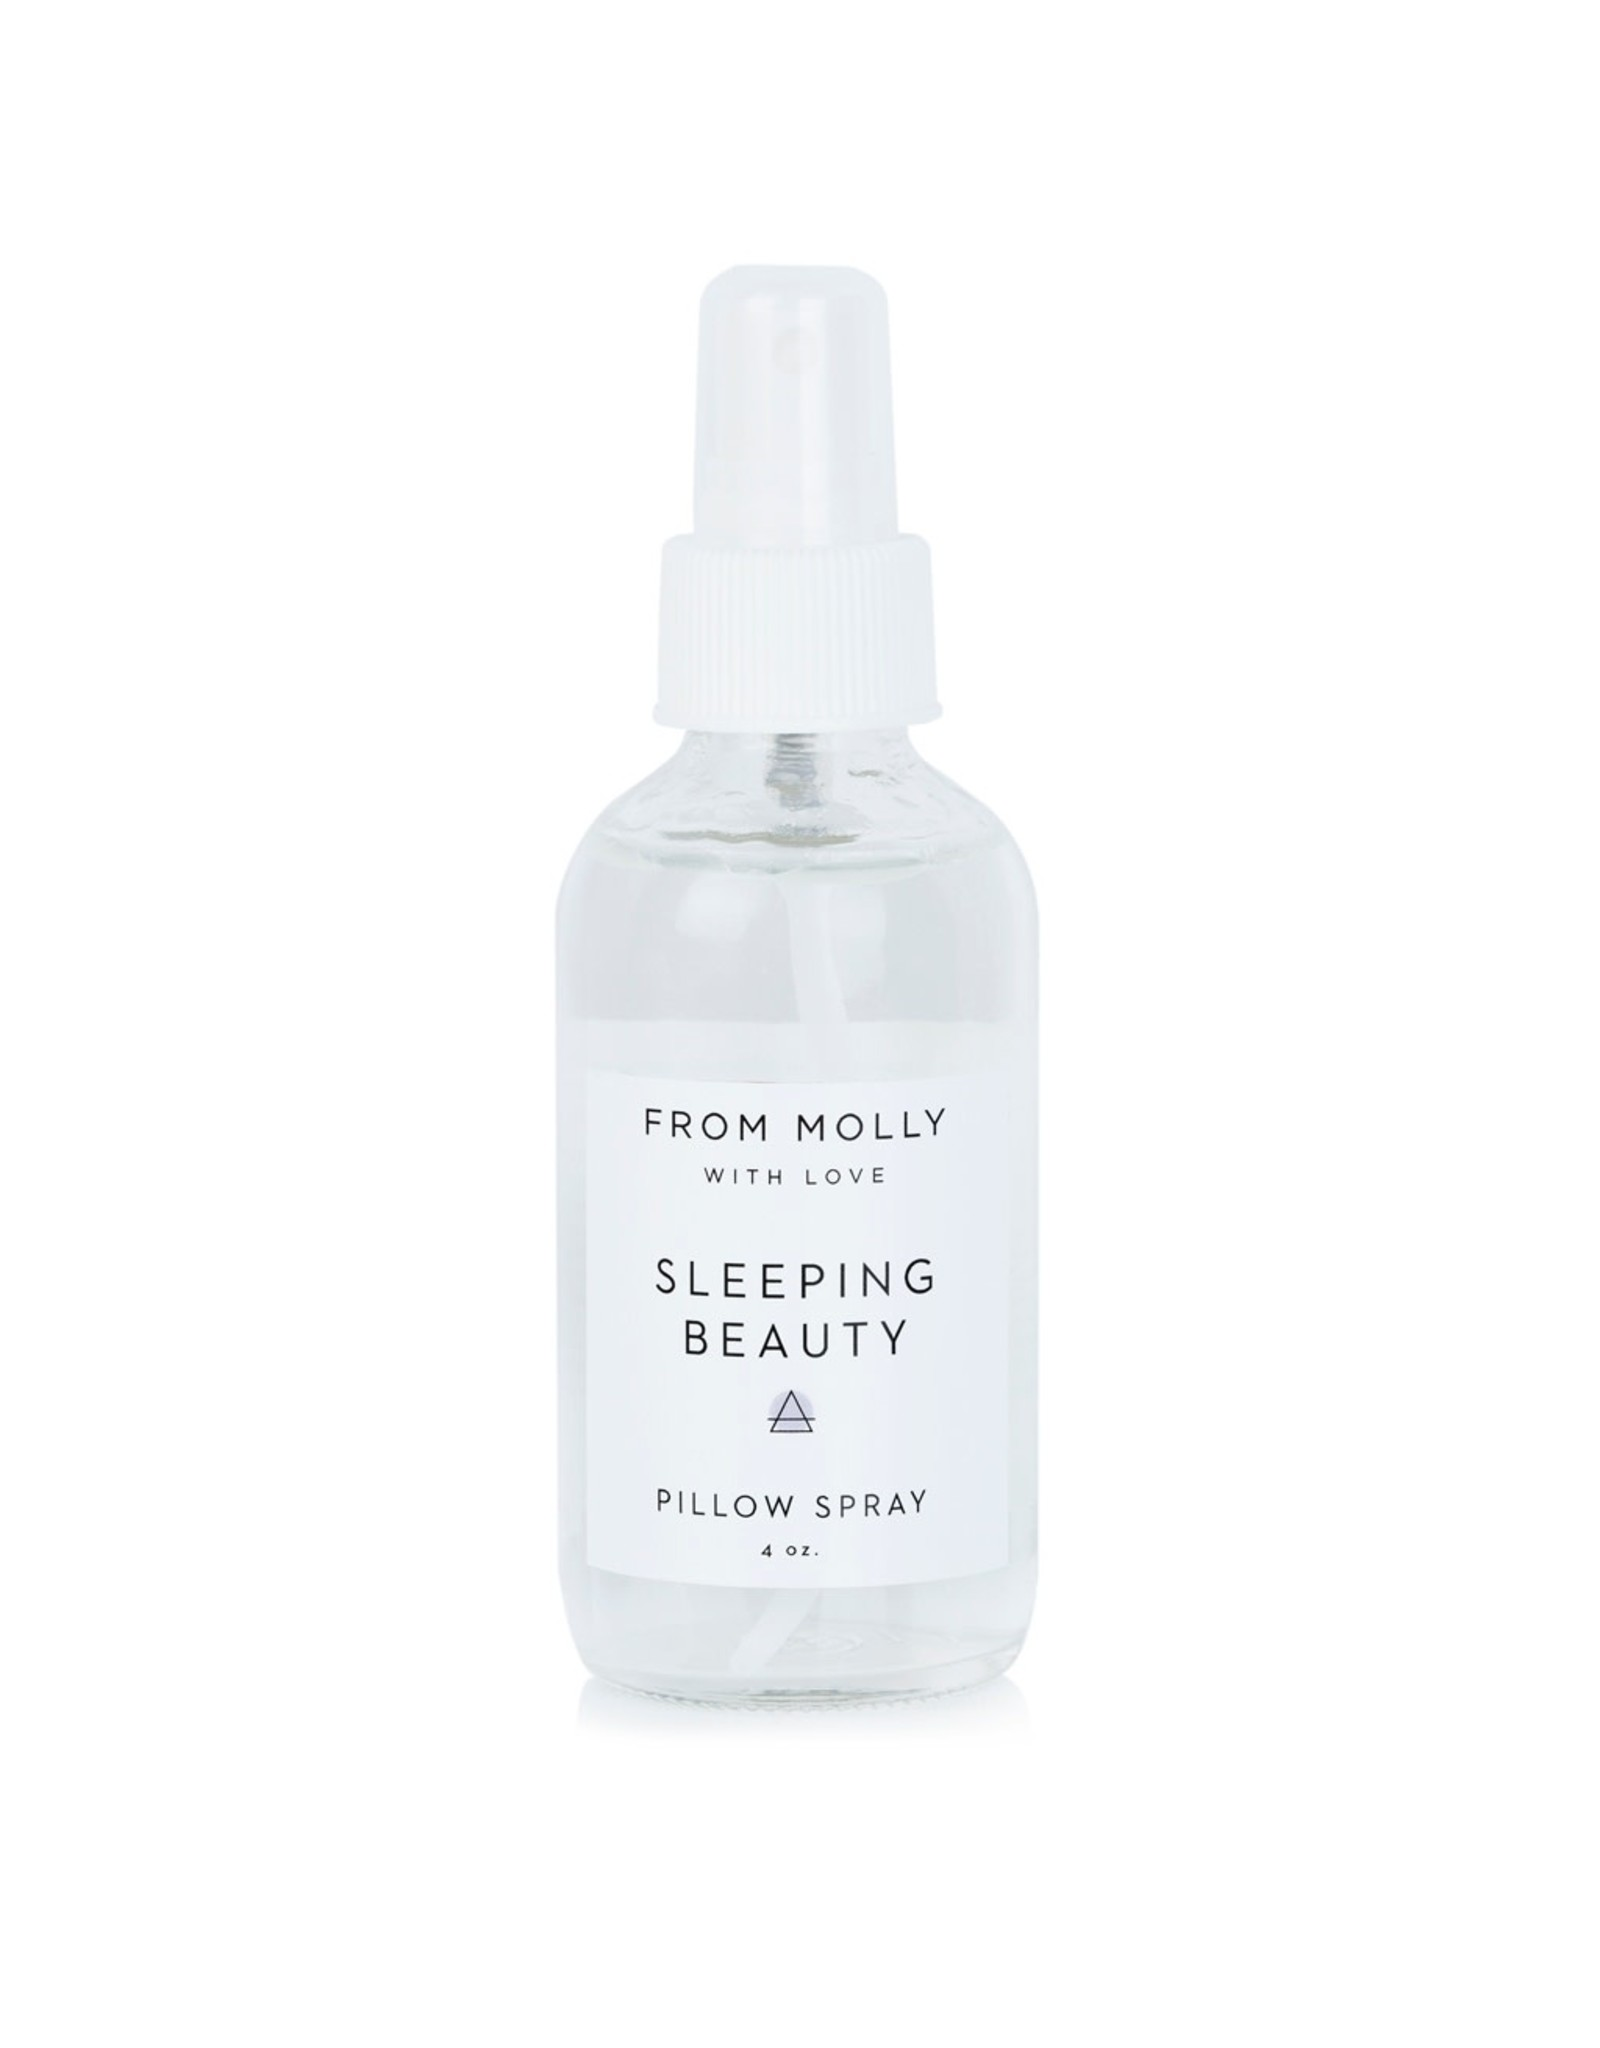 From Molly With Love Sleeping Beauty Pillow Spray 4 oz.